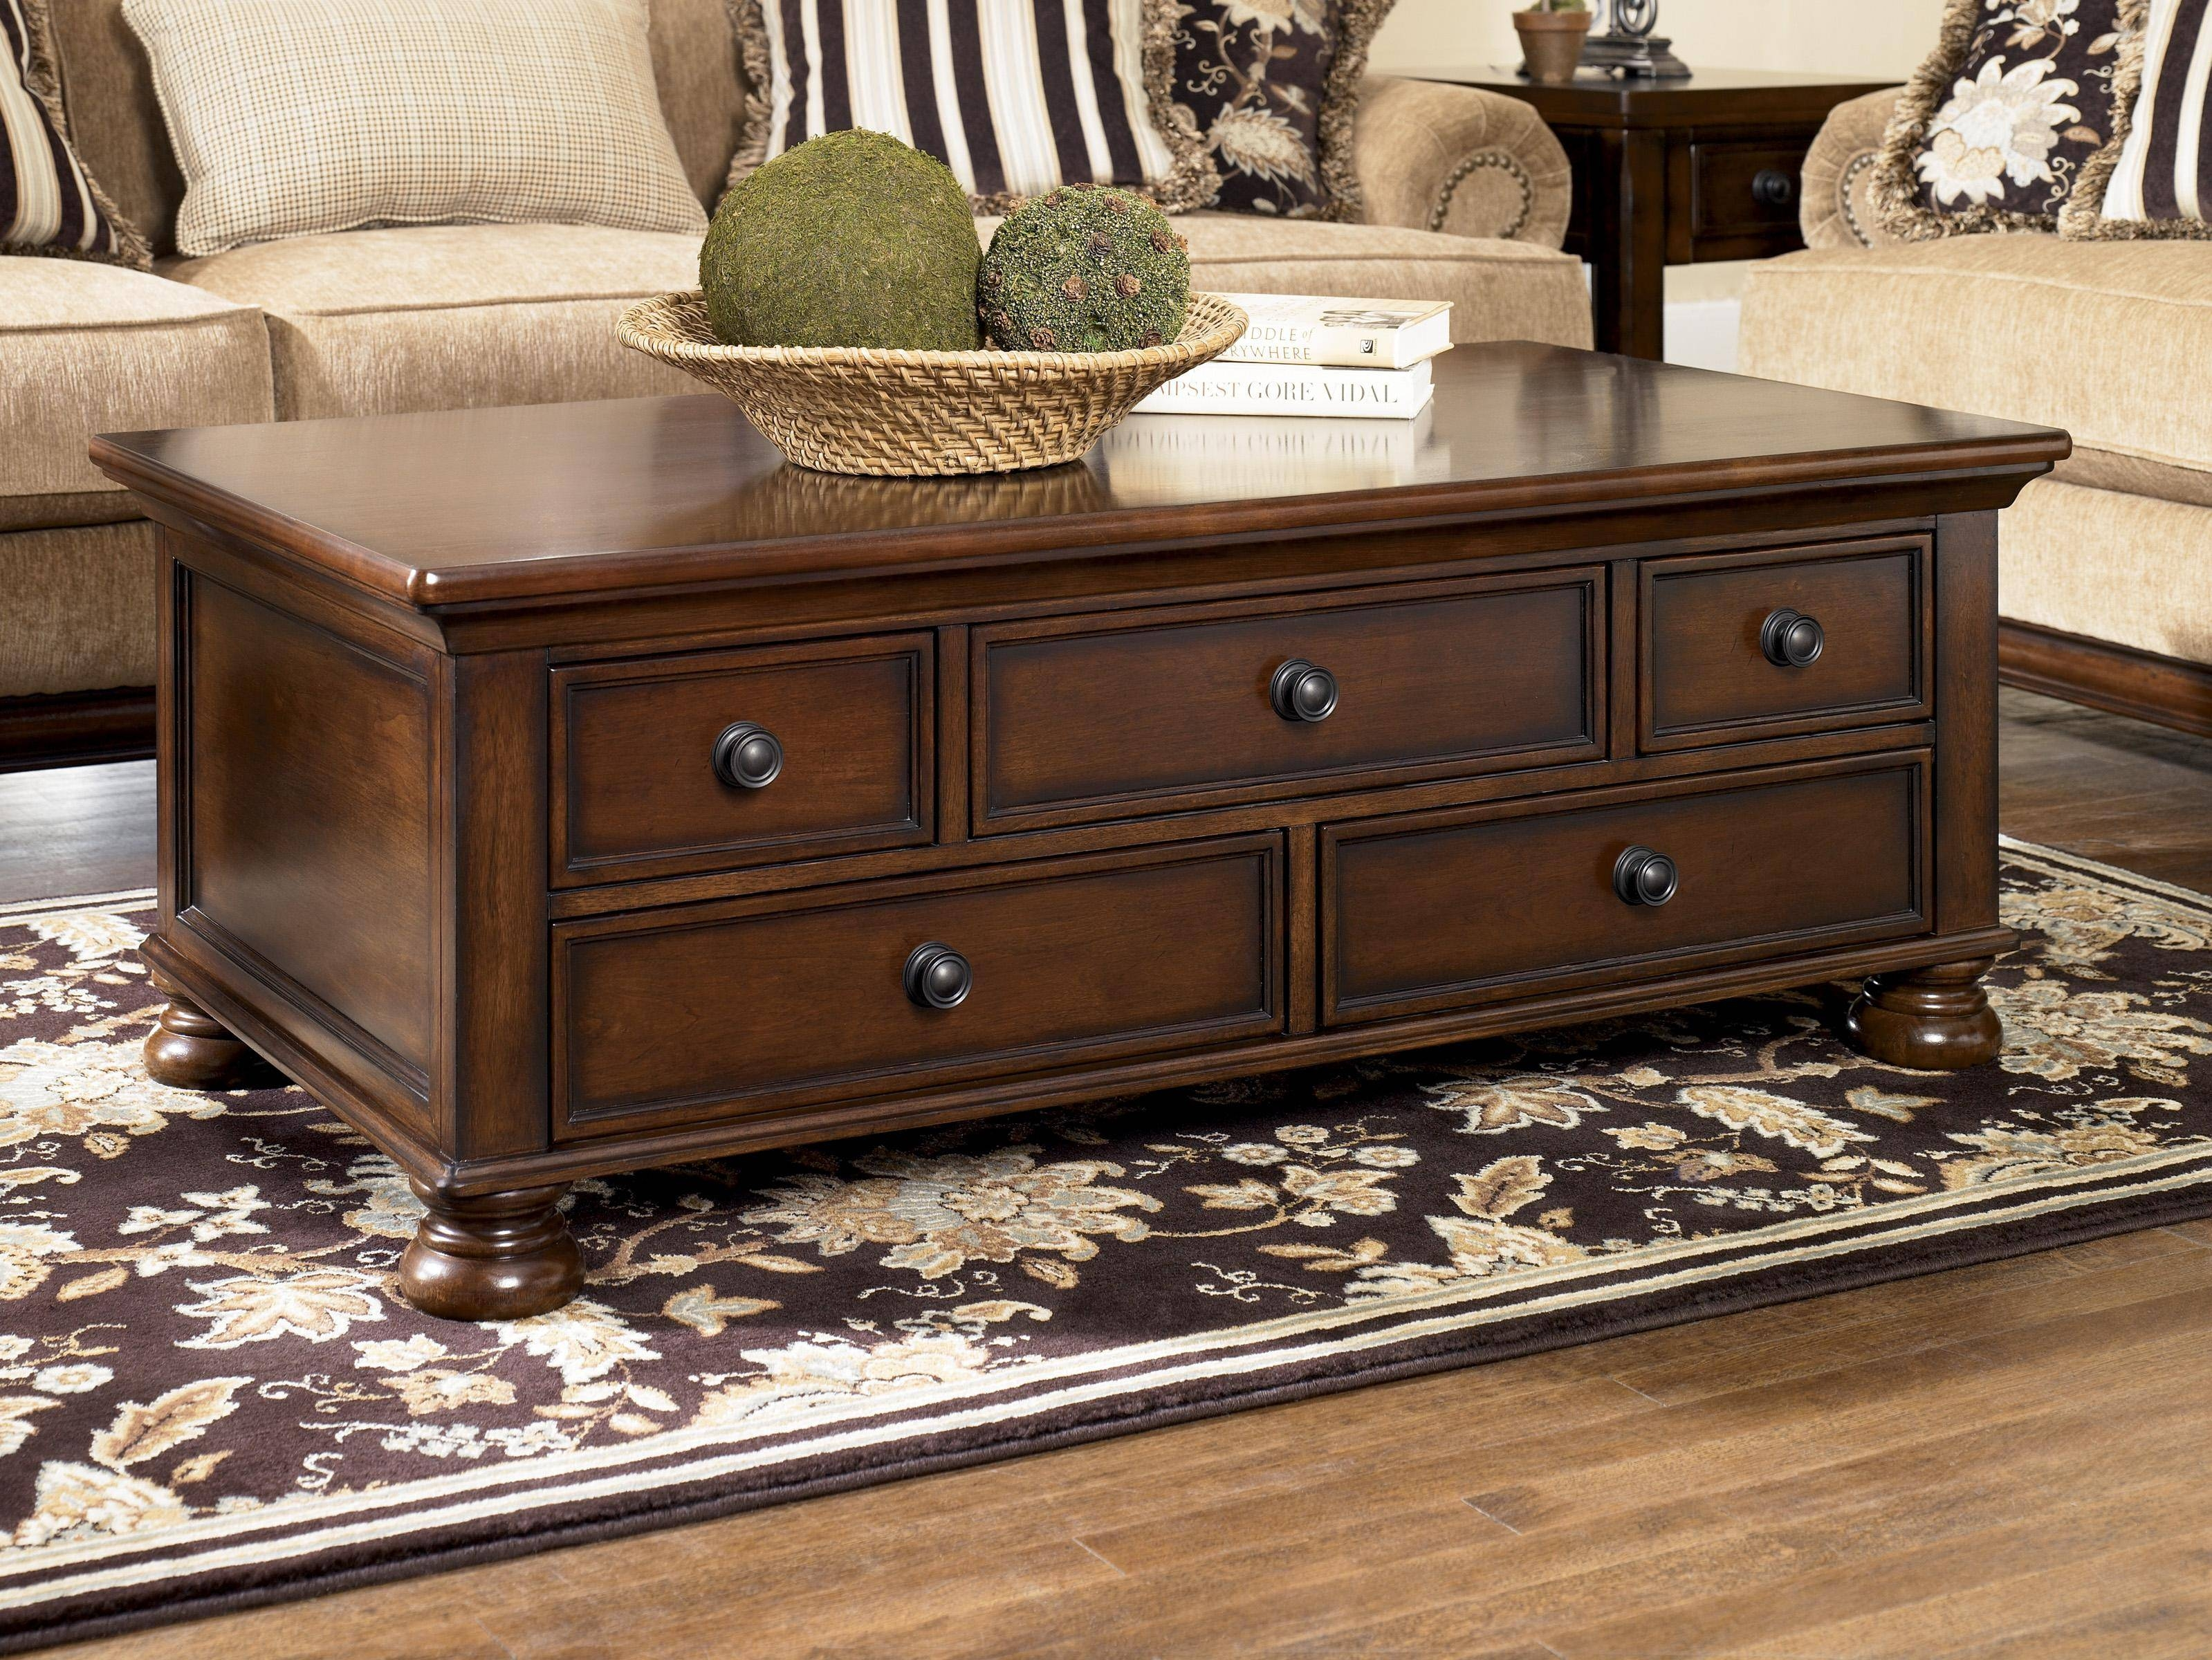 Coffee Table, Cool Large Coffee Table With Storage Large Coffee within Large Coffee Tables With Storage (Image 1 of 30)